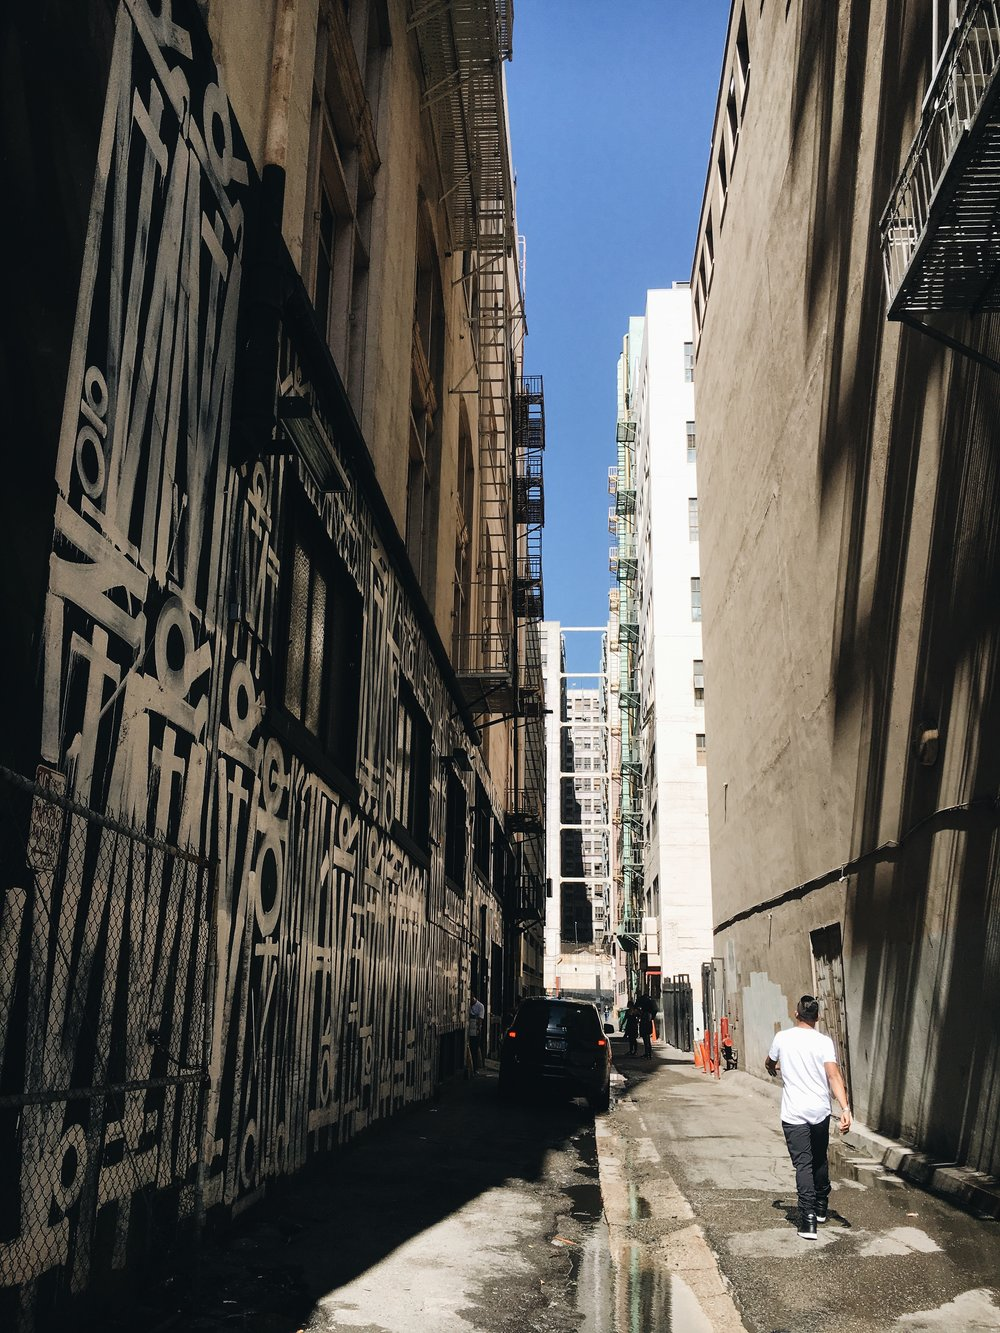 Finding the perfect alleyway.